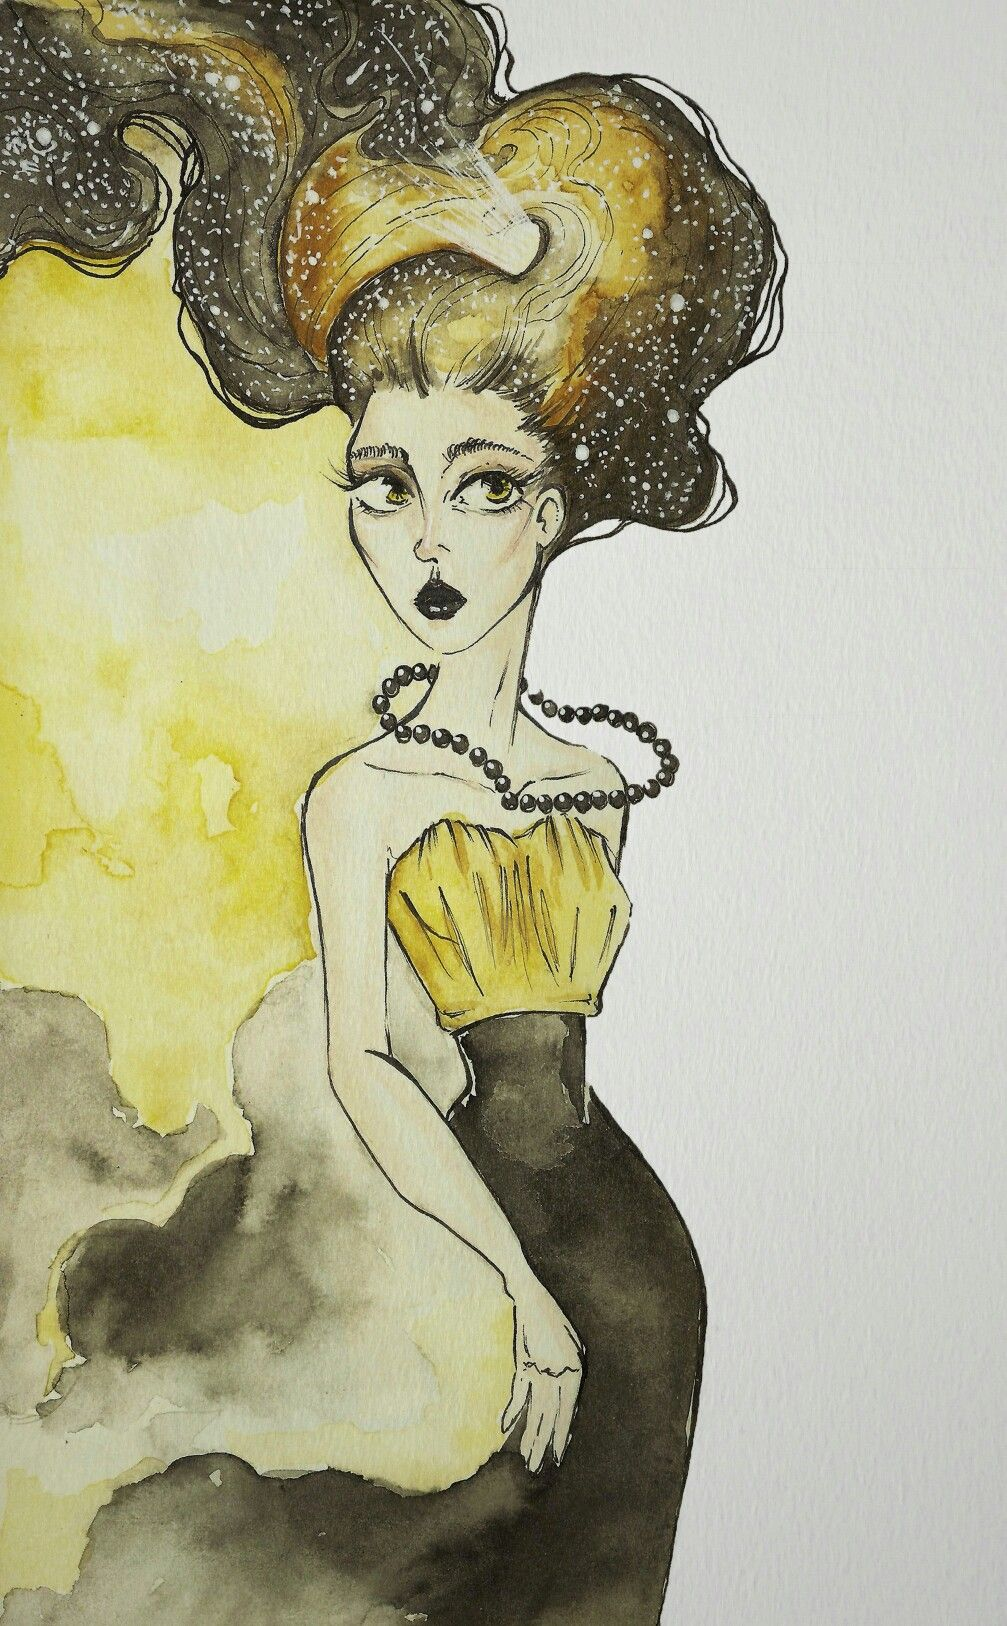 Infinity yellow #watercolor #illustration #drawmore